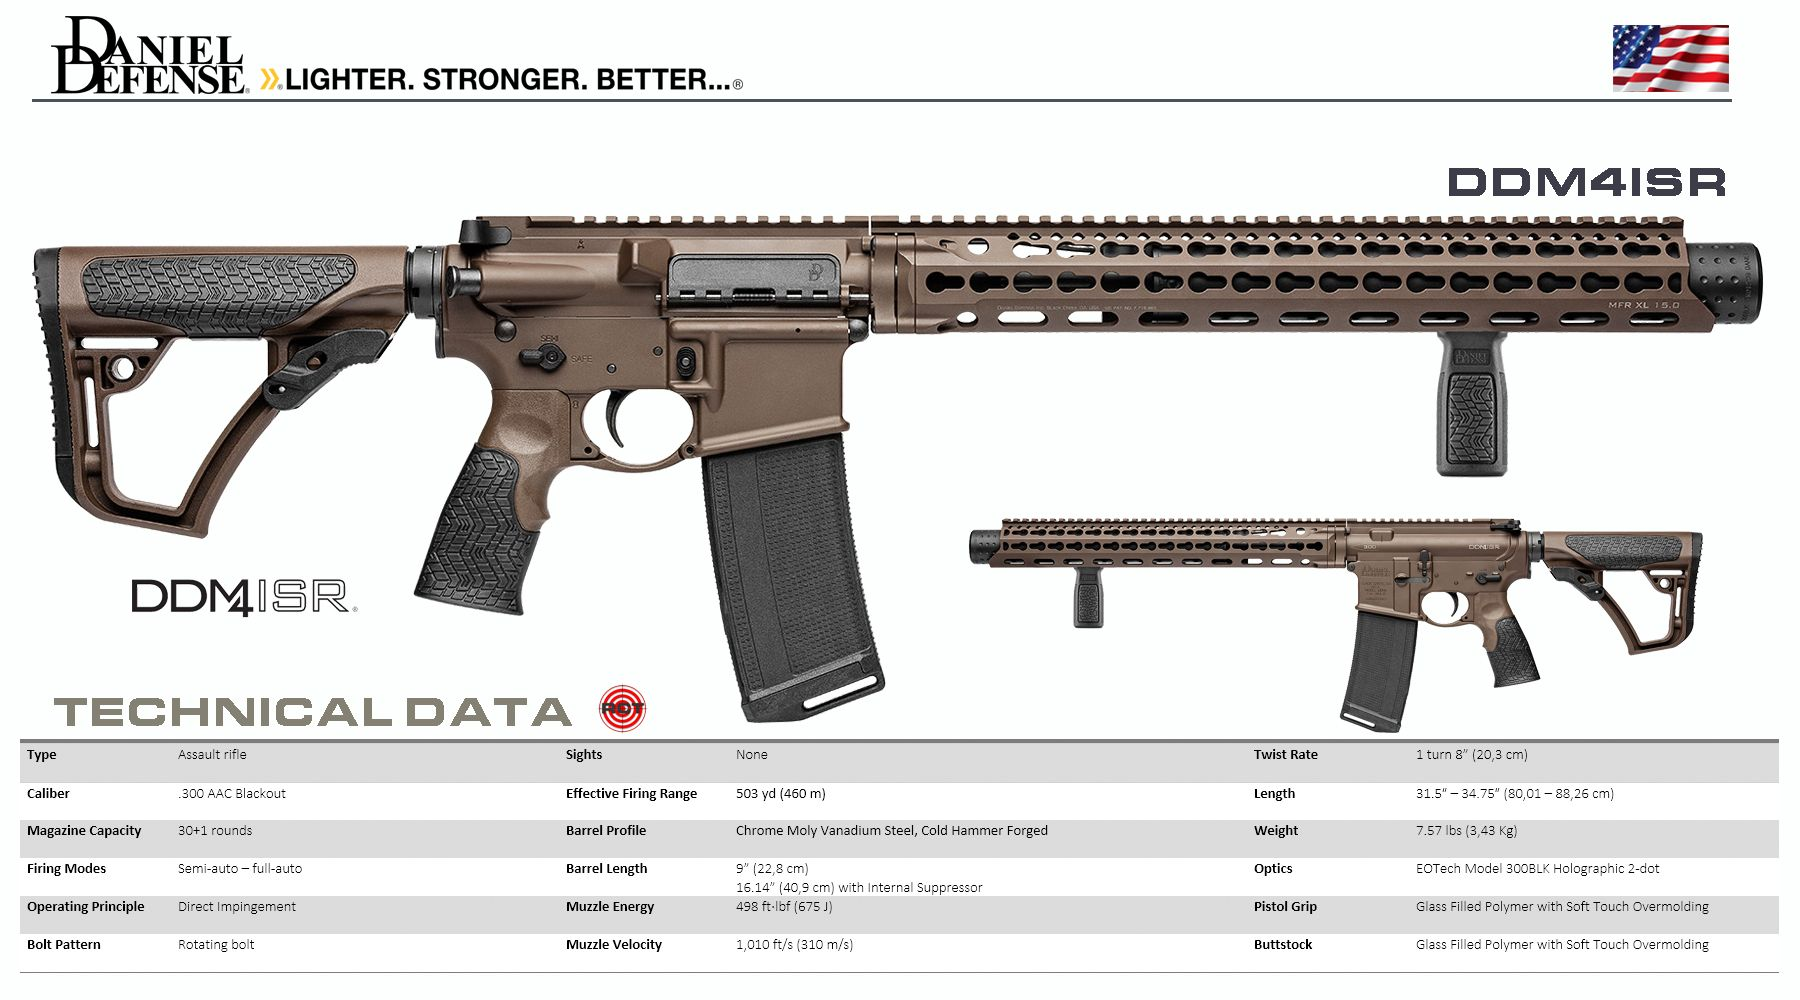 Daniel defense ddm isr blackout discover the best gun magazine loaders in also pin by jake paul on weapons rpg pinterest guns firearms and rh